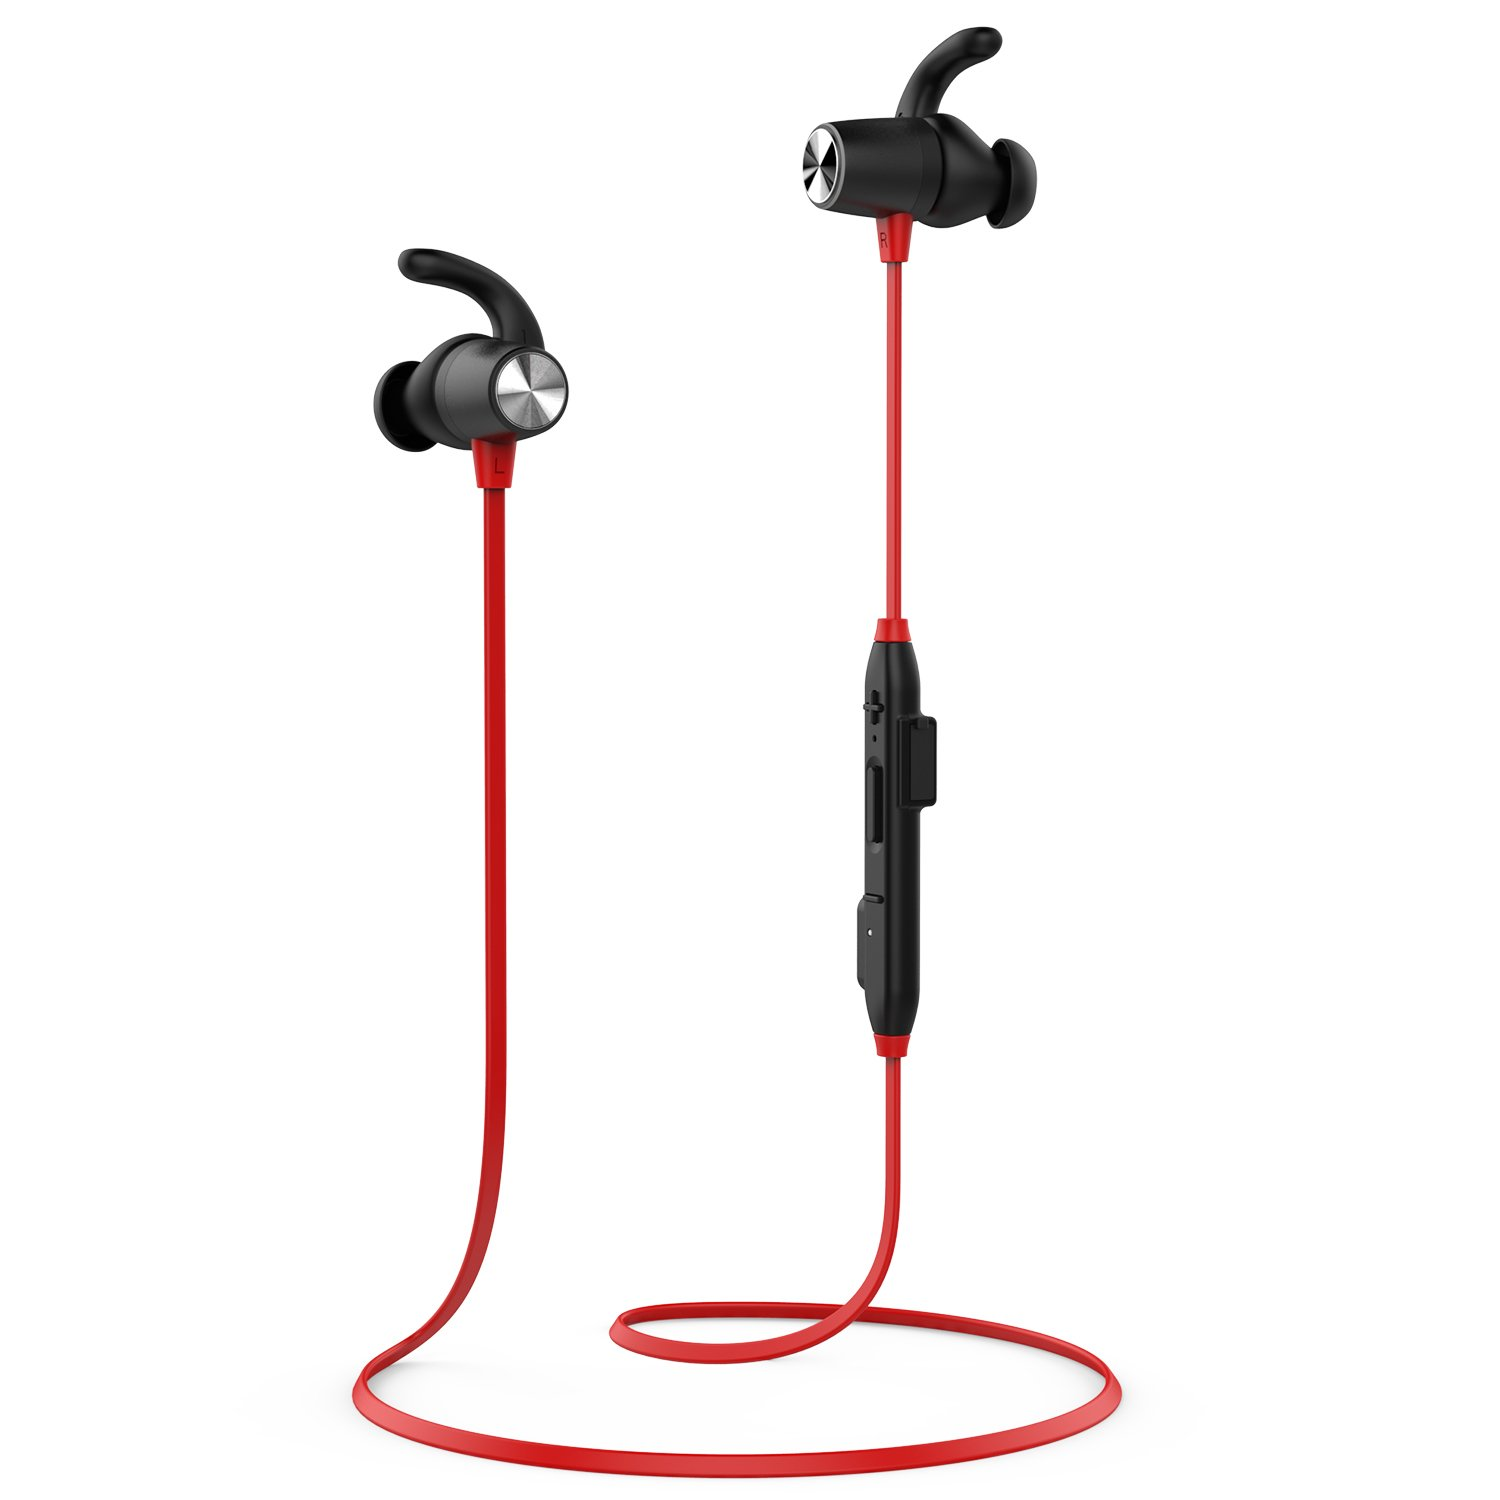 Dodocool Magnetic Wireless Bluetooth 4.1 Headphones With Sweat Resistant Design